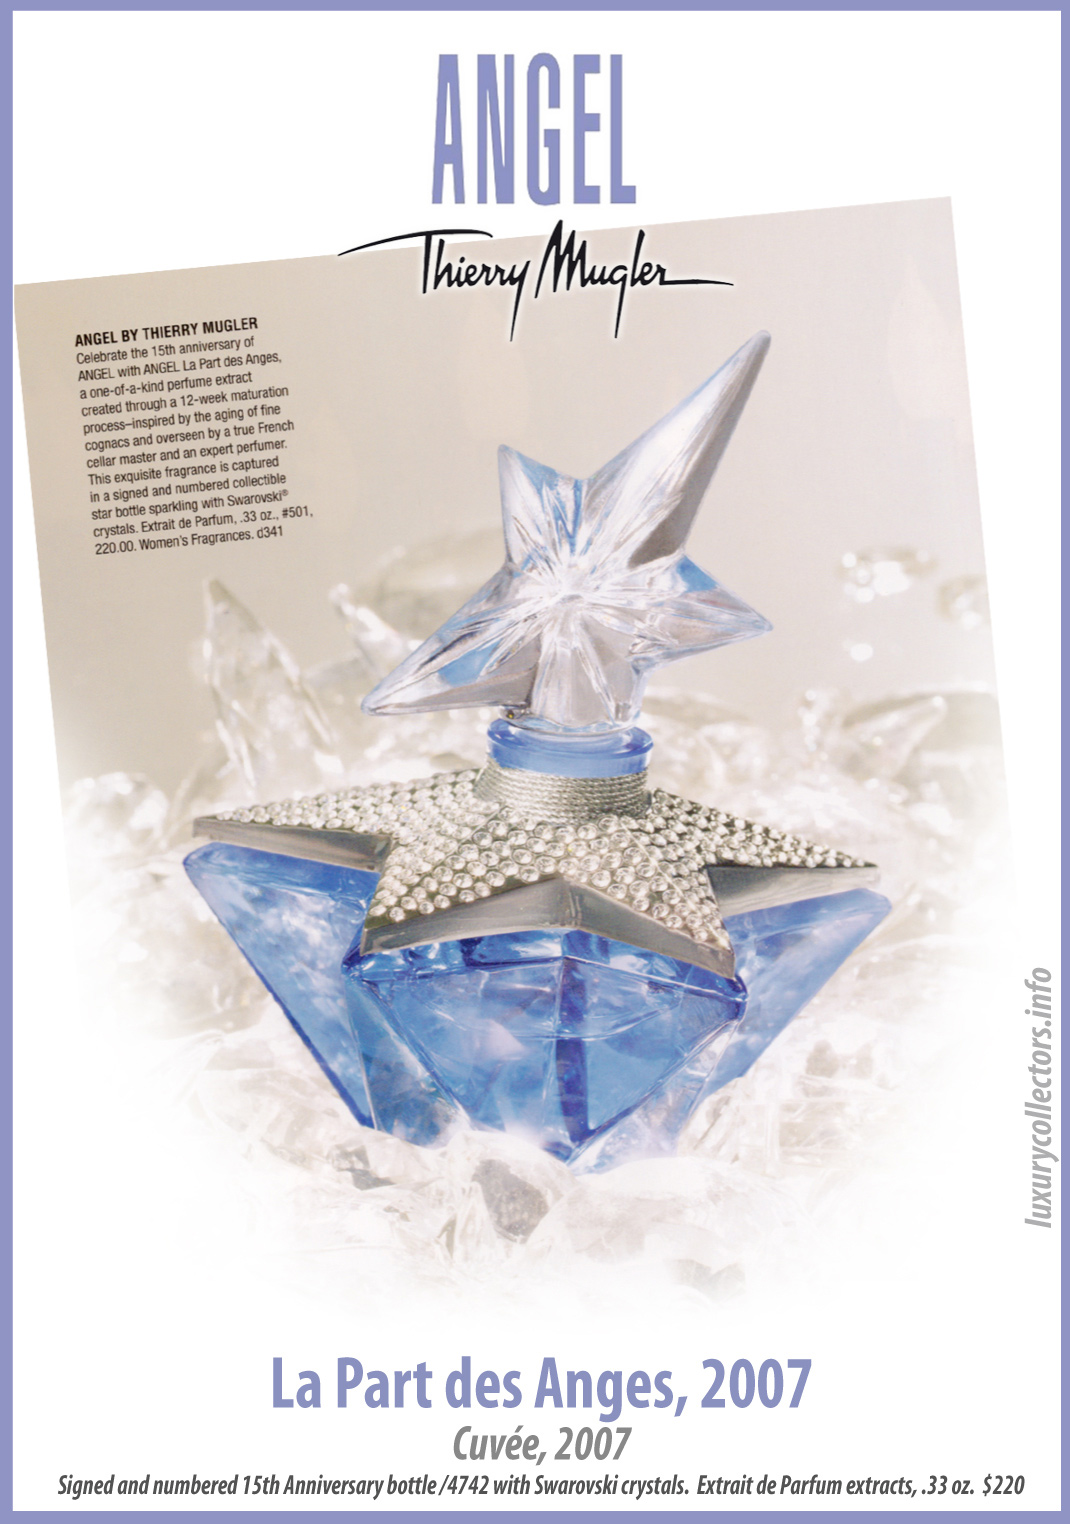 Thierry Mugler Angel 20 Years Perfume Collector's Limited Edition Bottle 2007 La Part des Anges Swrovski